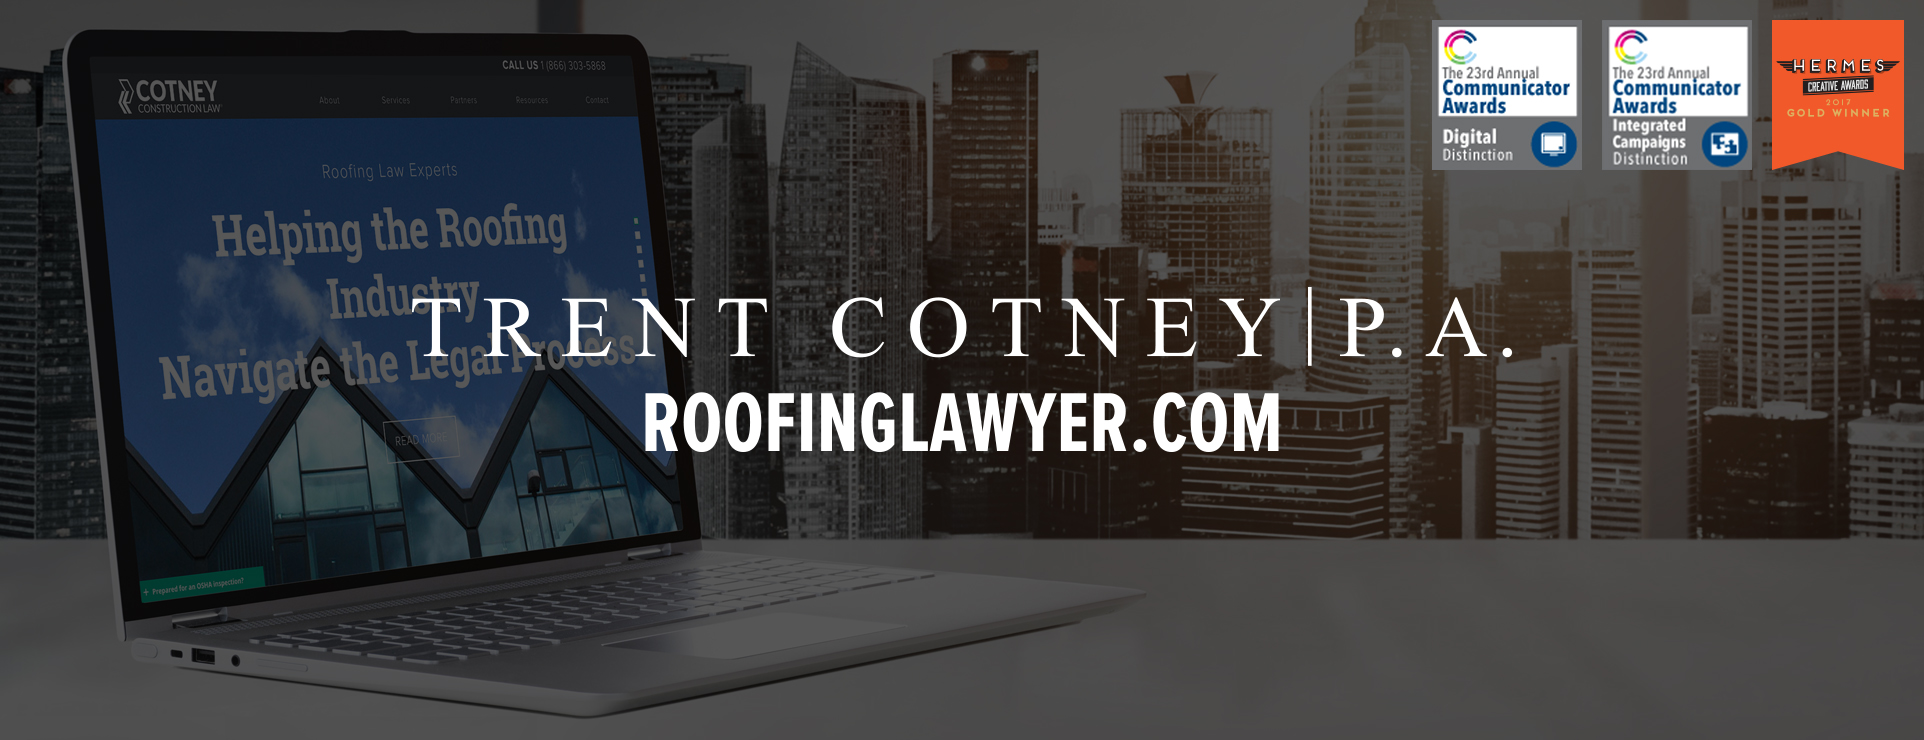 Roofing_header